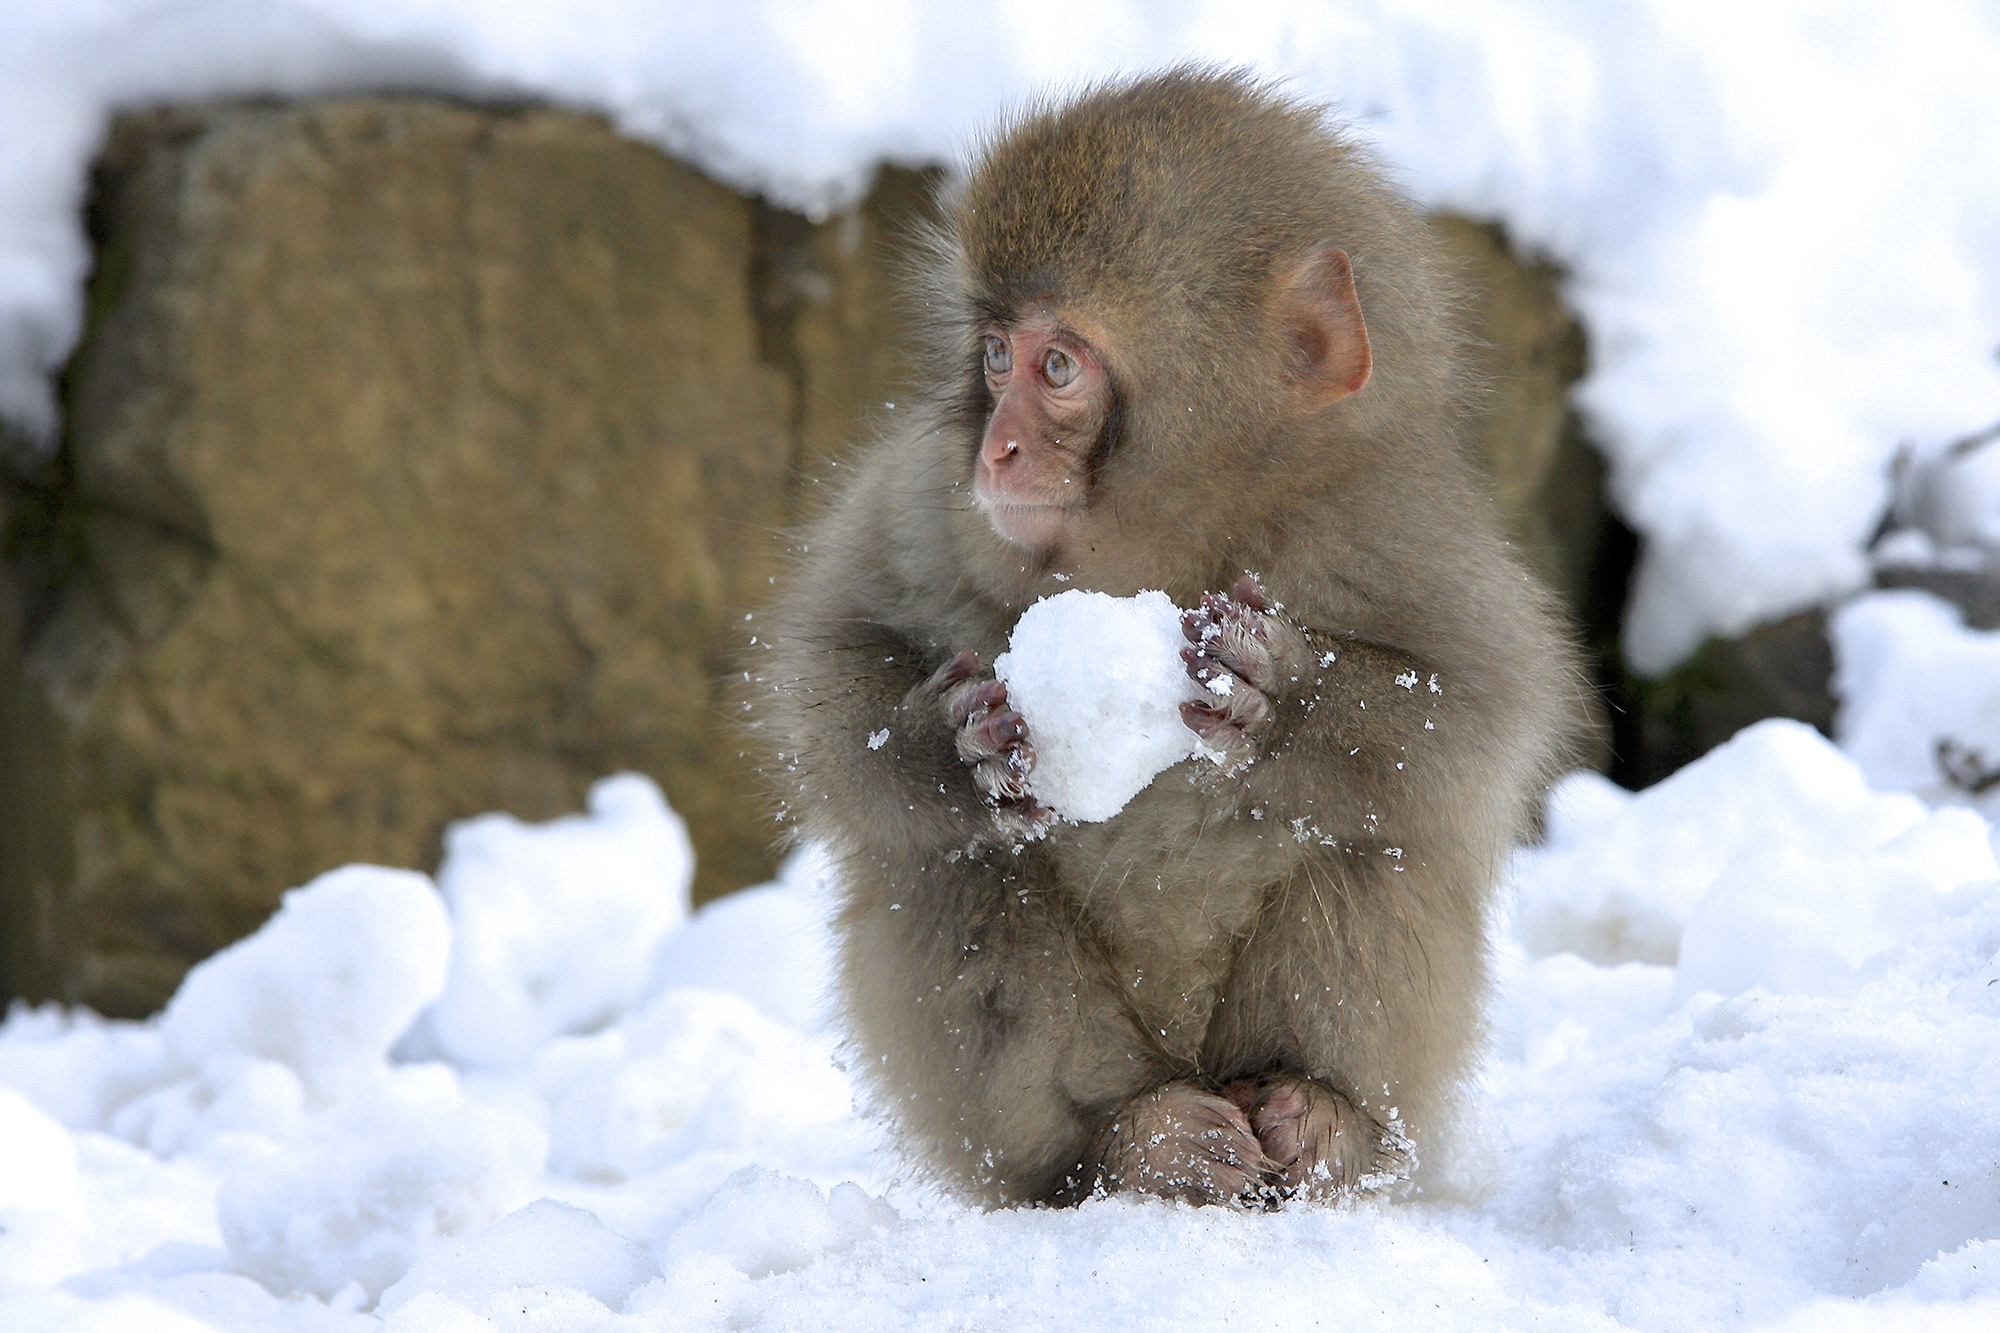 A young white snow monkey in Japan appears to make a snowball.Photo by Nicolas de Vaulx/The Comedy Wildlife Photography Awards.